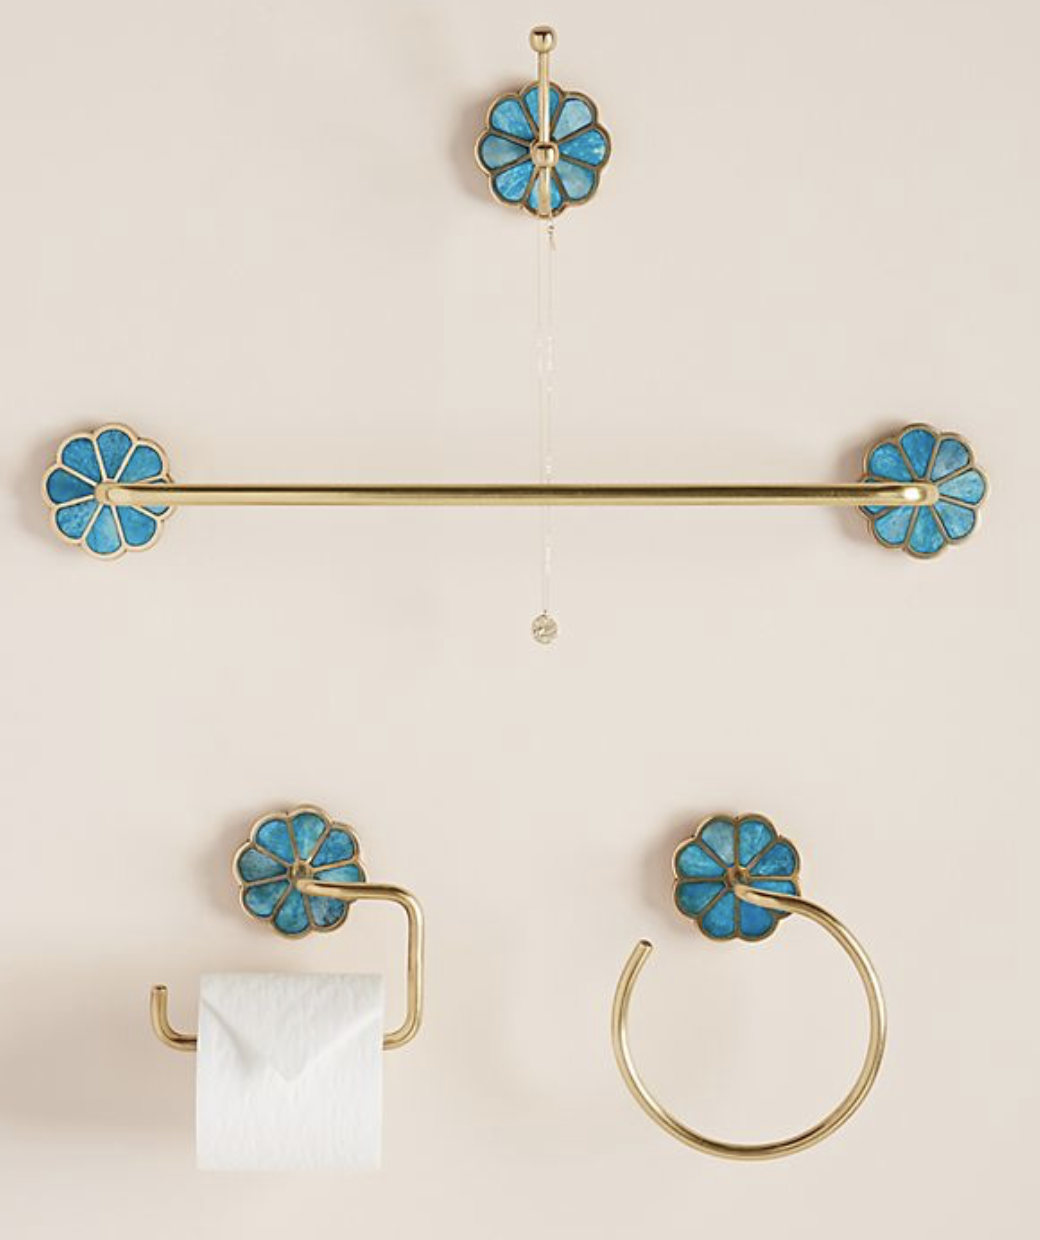 affordable bath hardware - unique and so cute for a renovation of a historic house